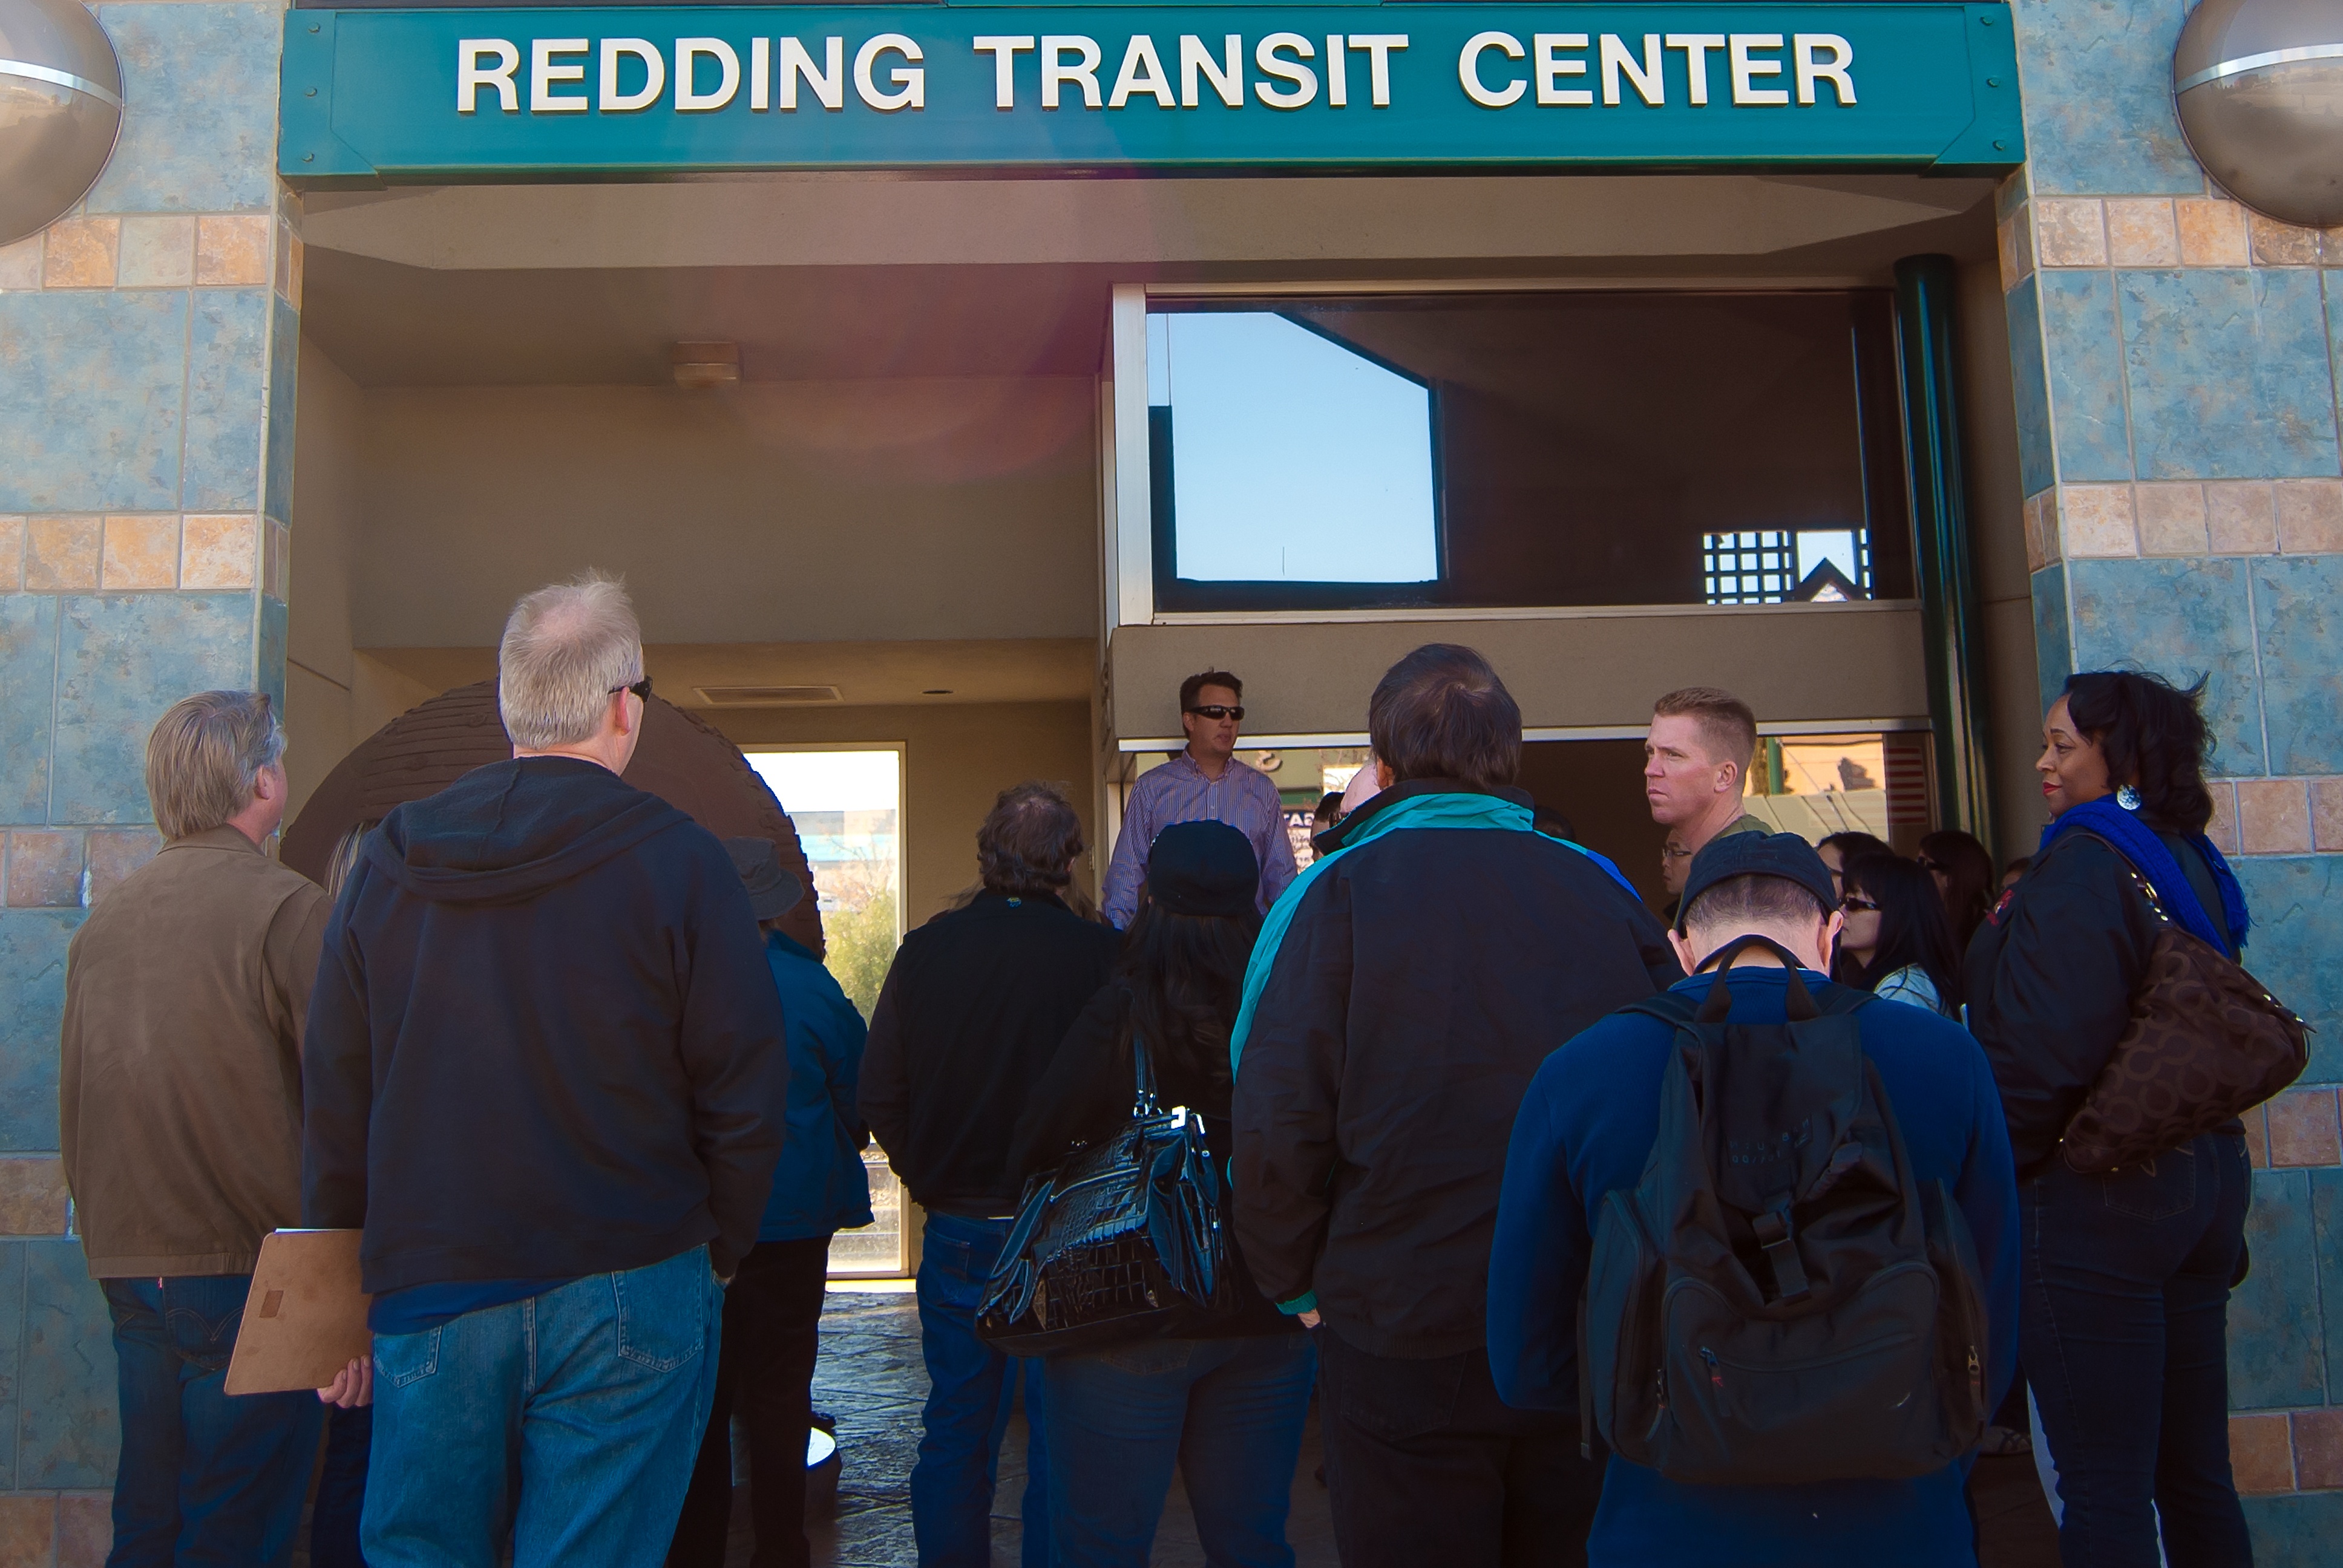 redding center We would like to show you a description here but the site won't allow us.